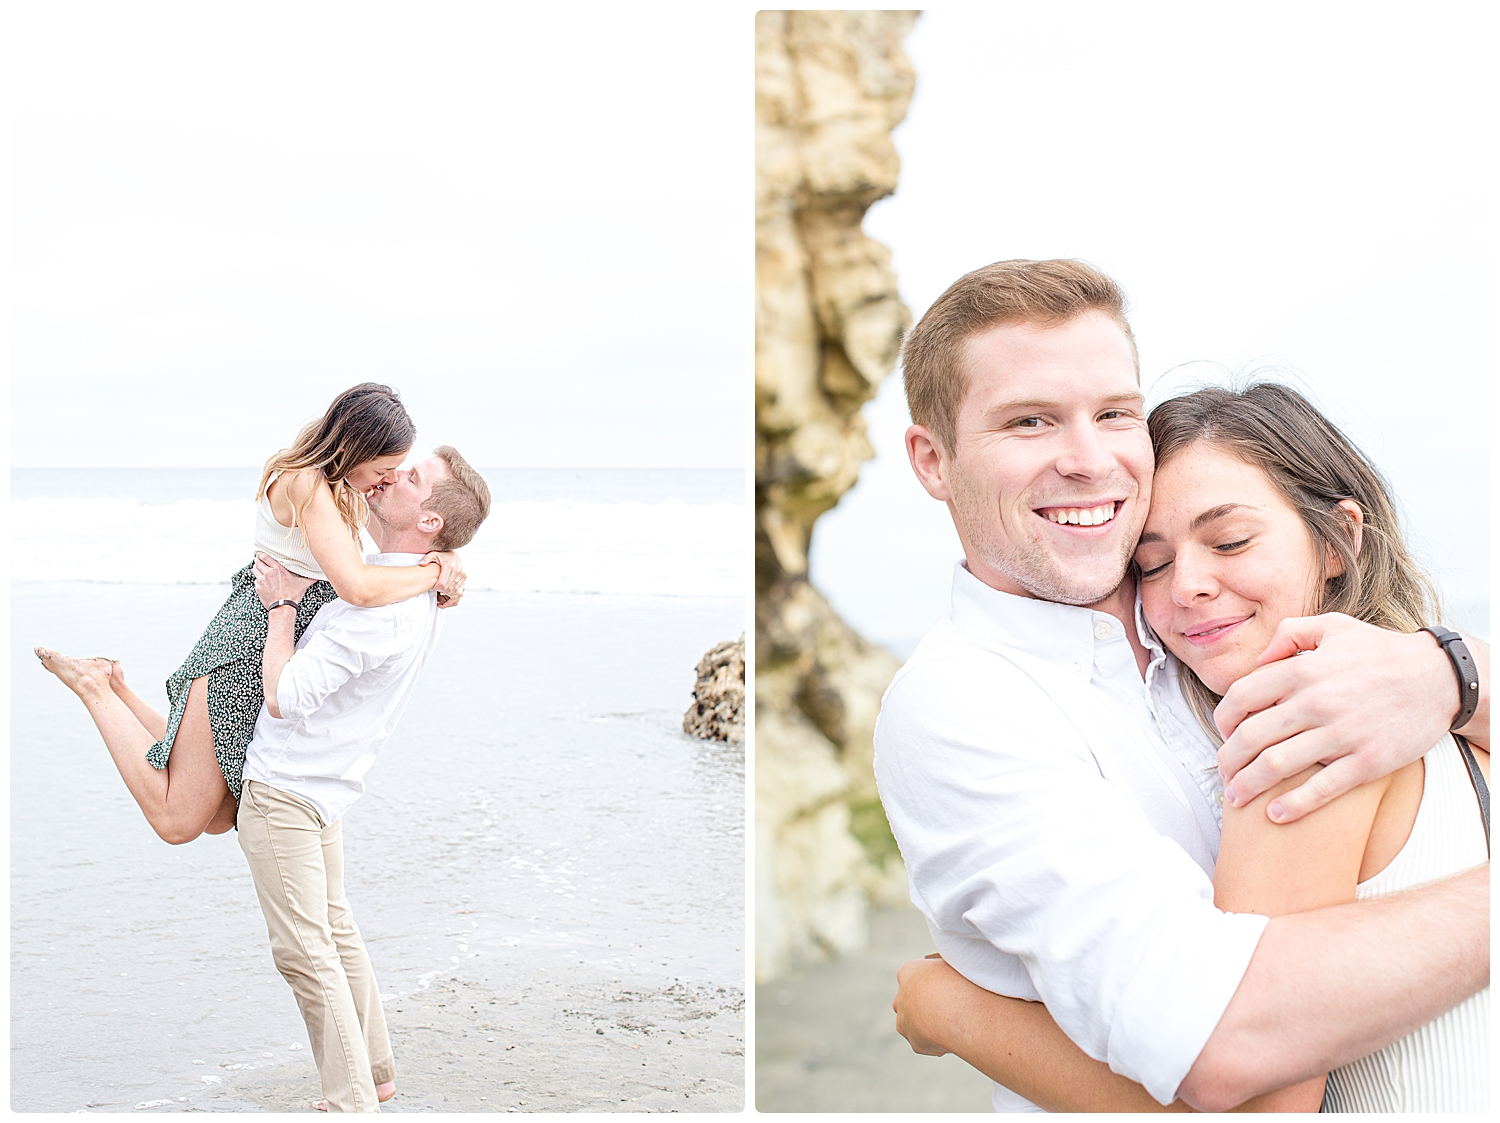 061919_EthanEmma_proposal_Renoda Campbell Photography-7321.jpg